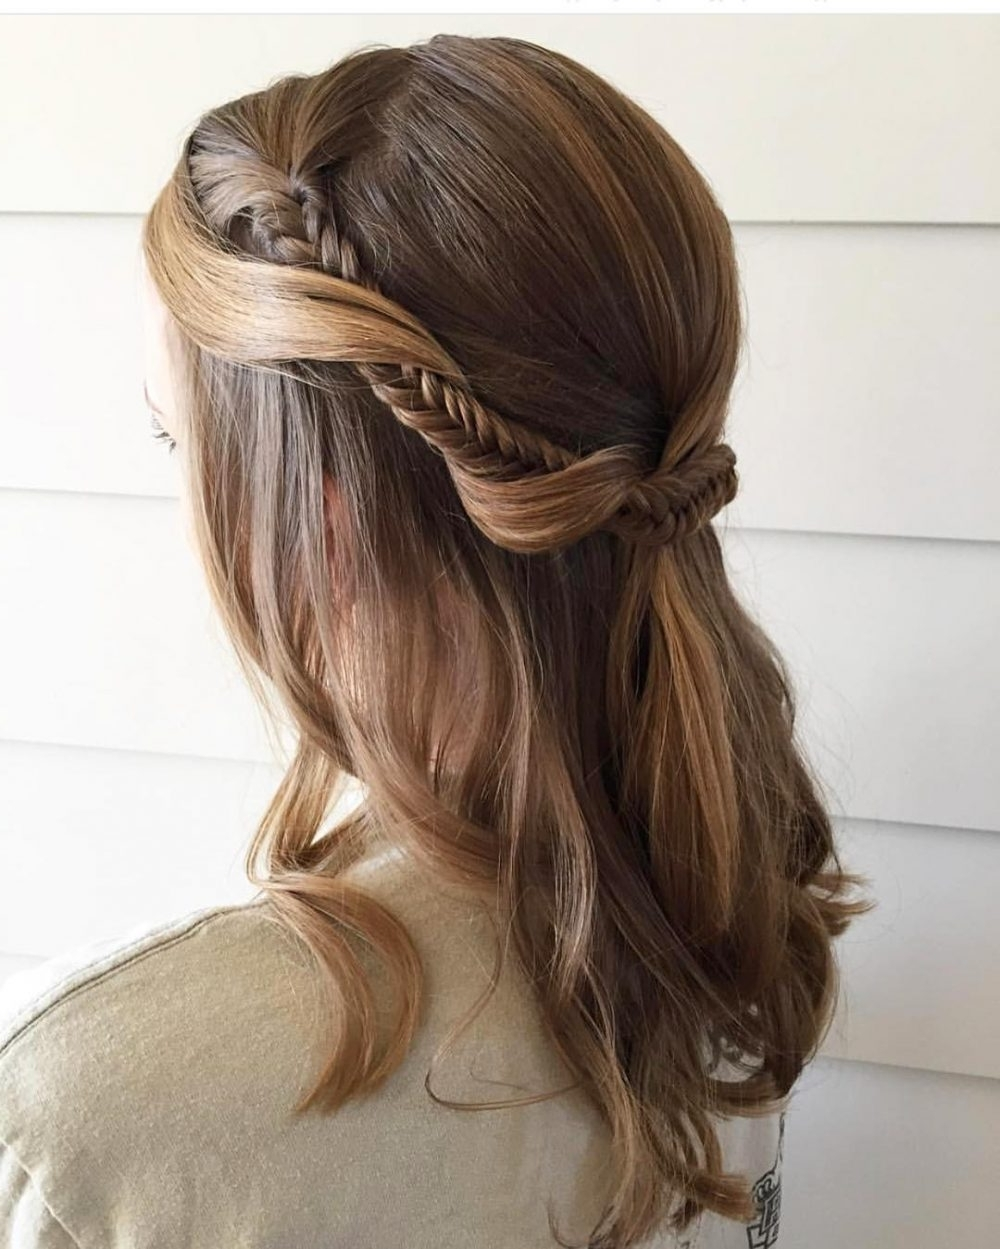 33 Ridiculously Easy Diy Chic Updos Throughout Easiest Updo Hairstyles (View 4 of 15)